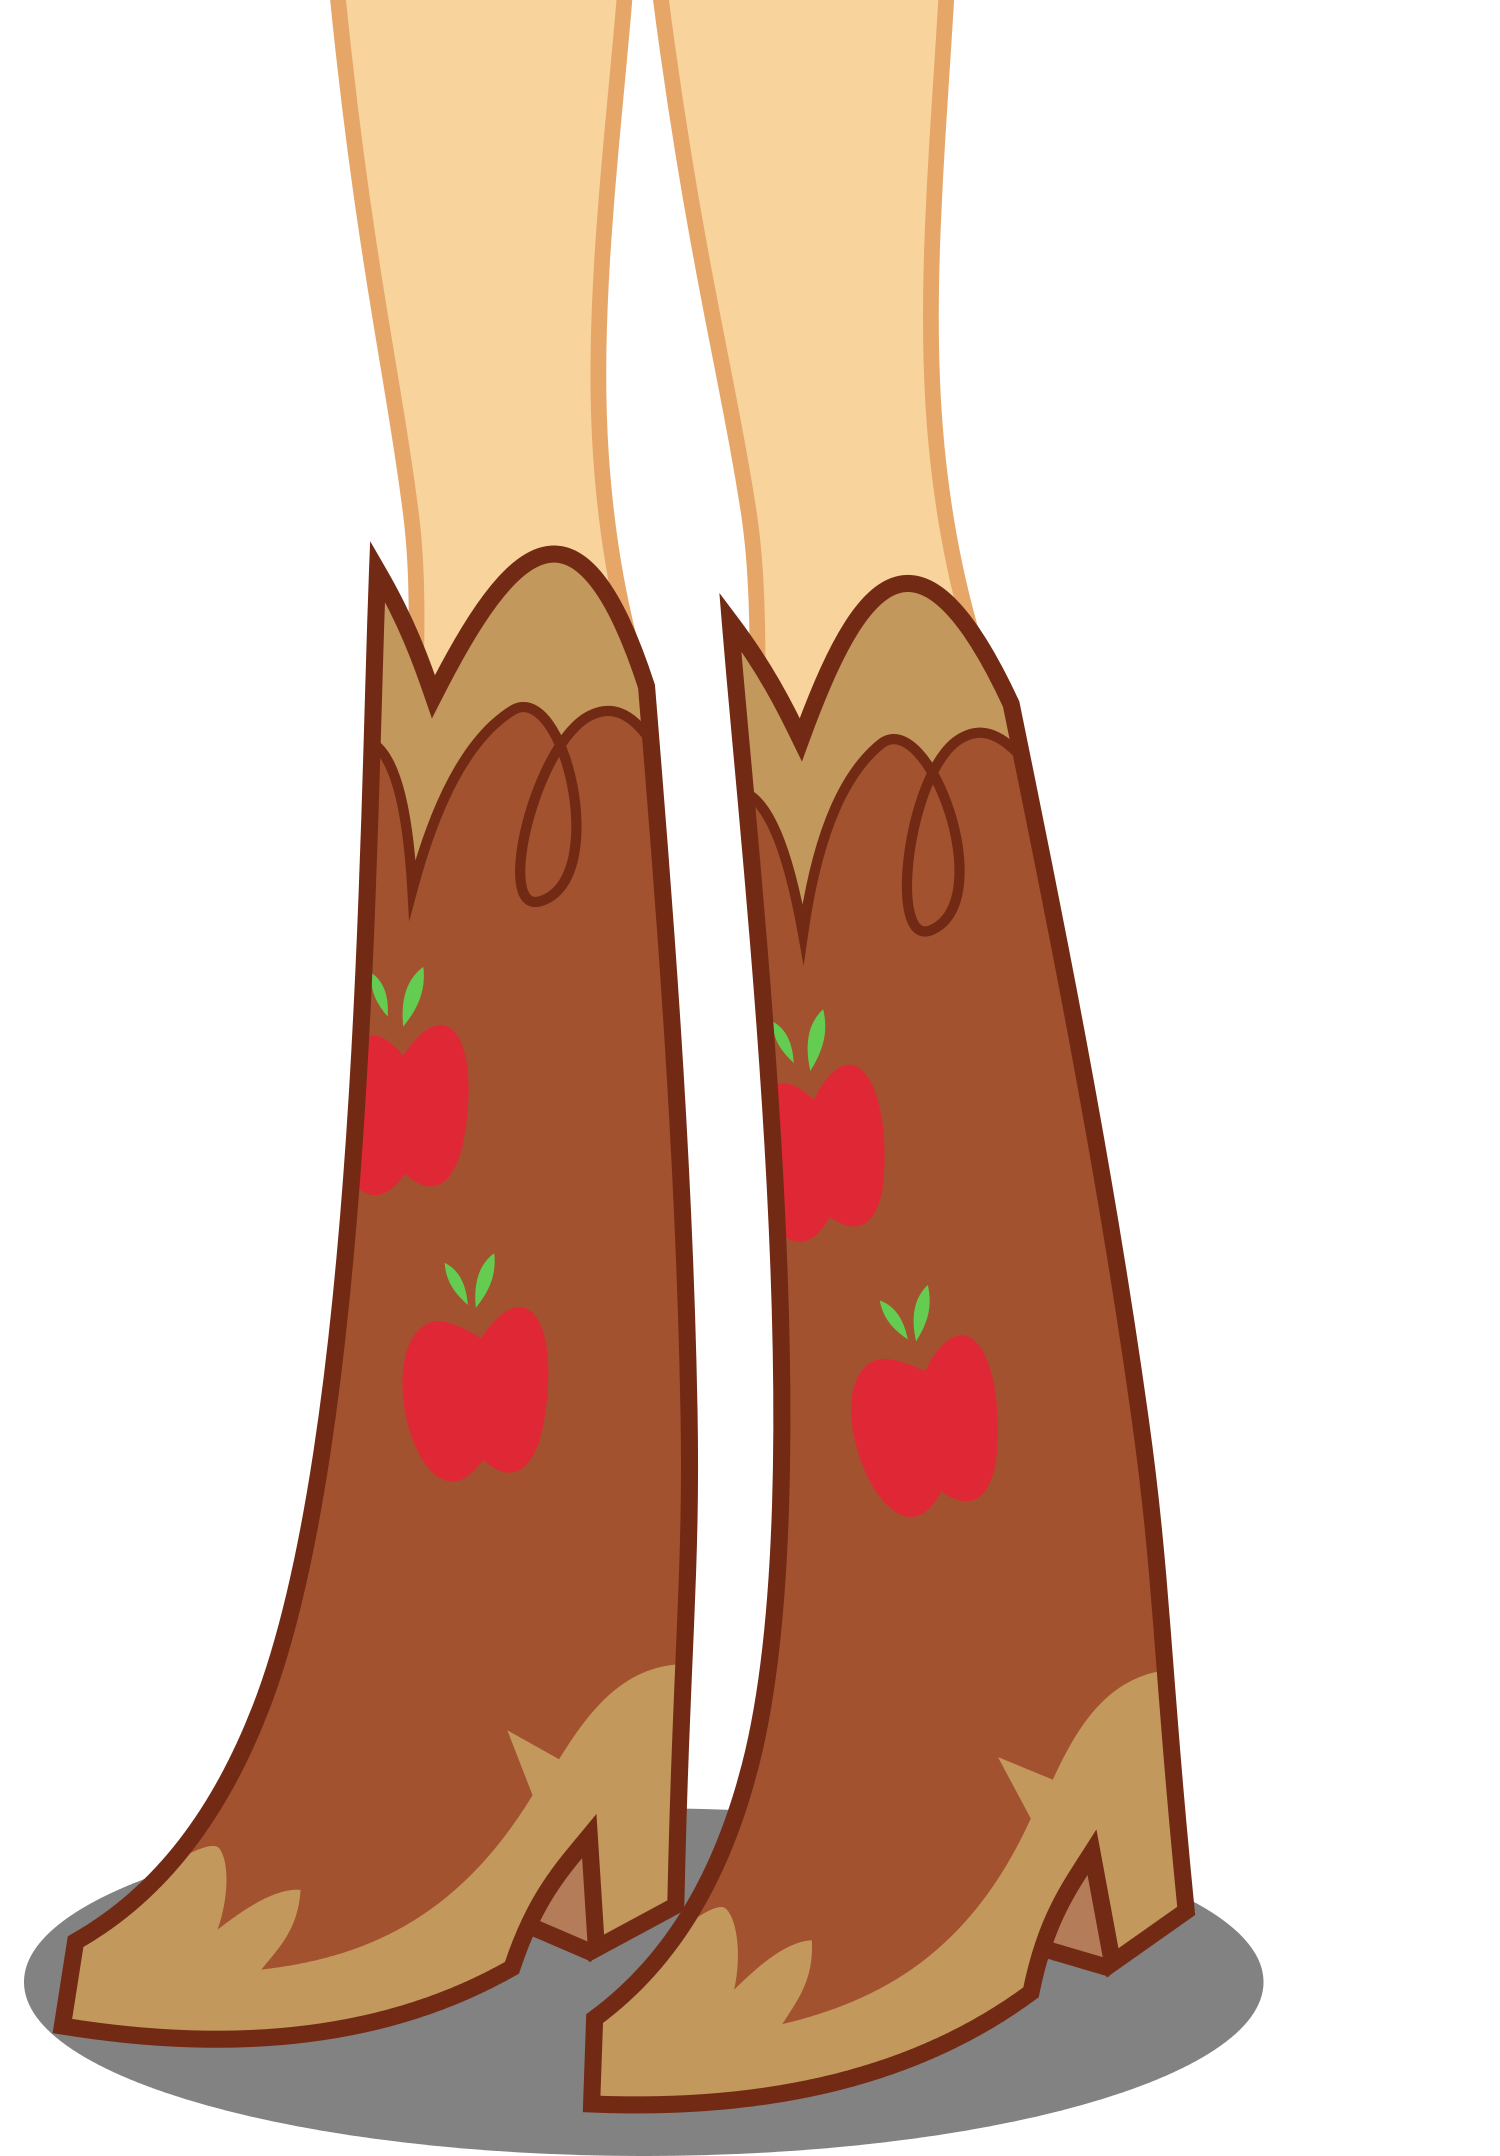 Boot clipart girl boot. Image applejack s boots